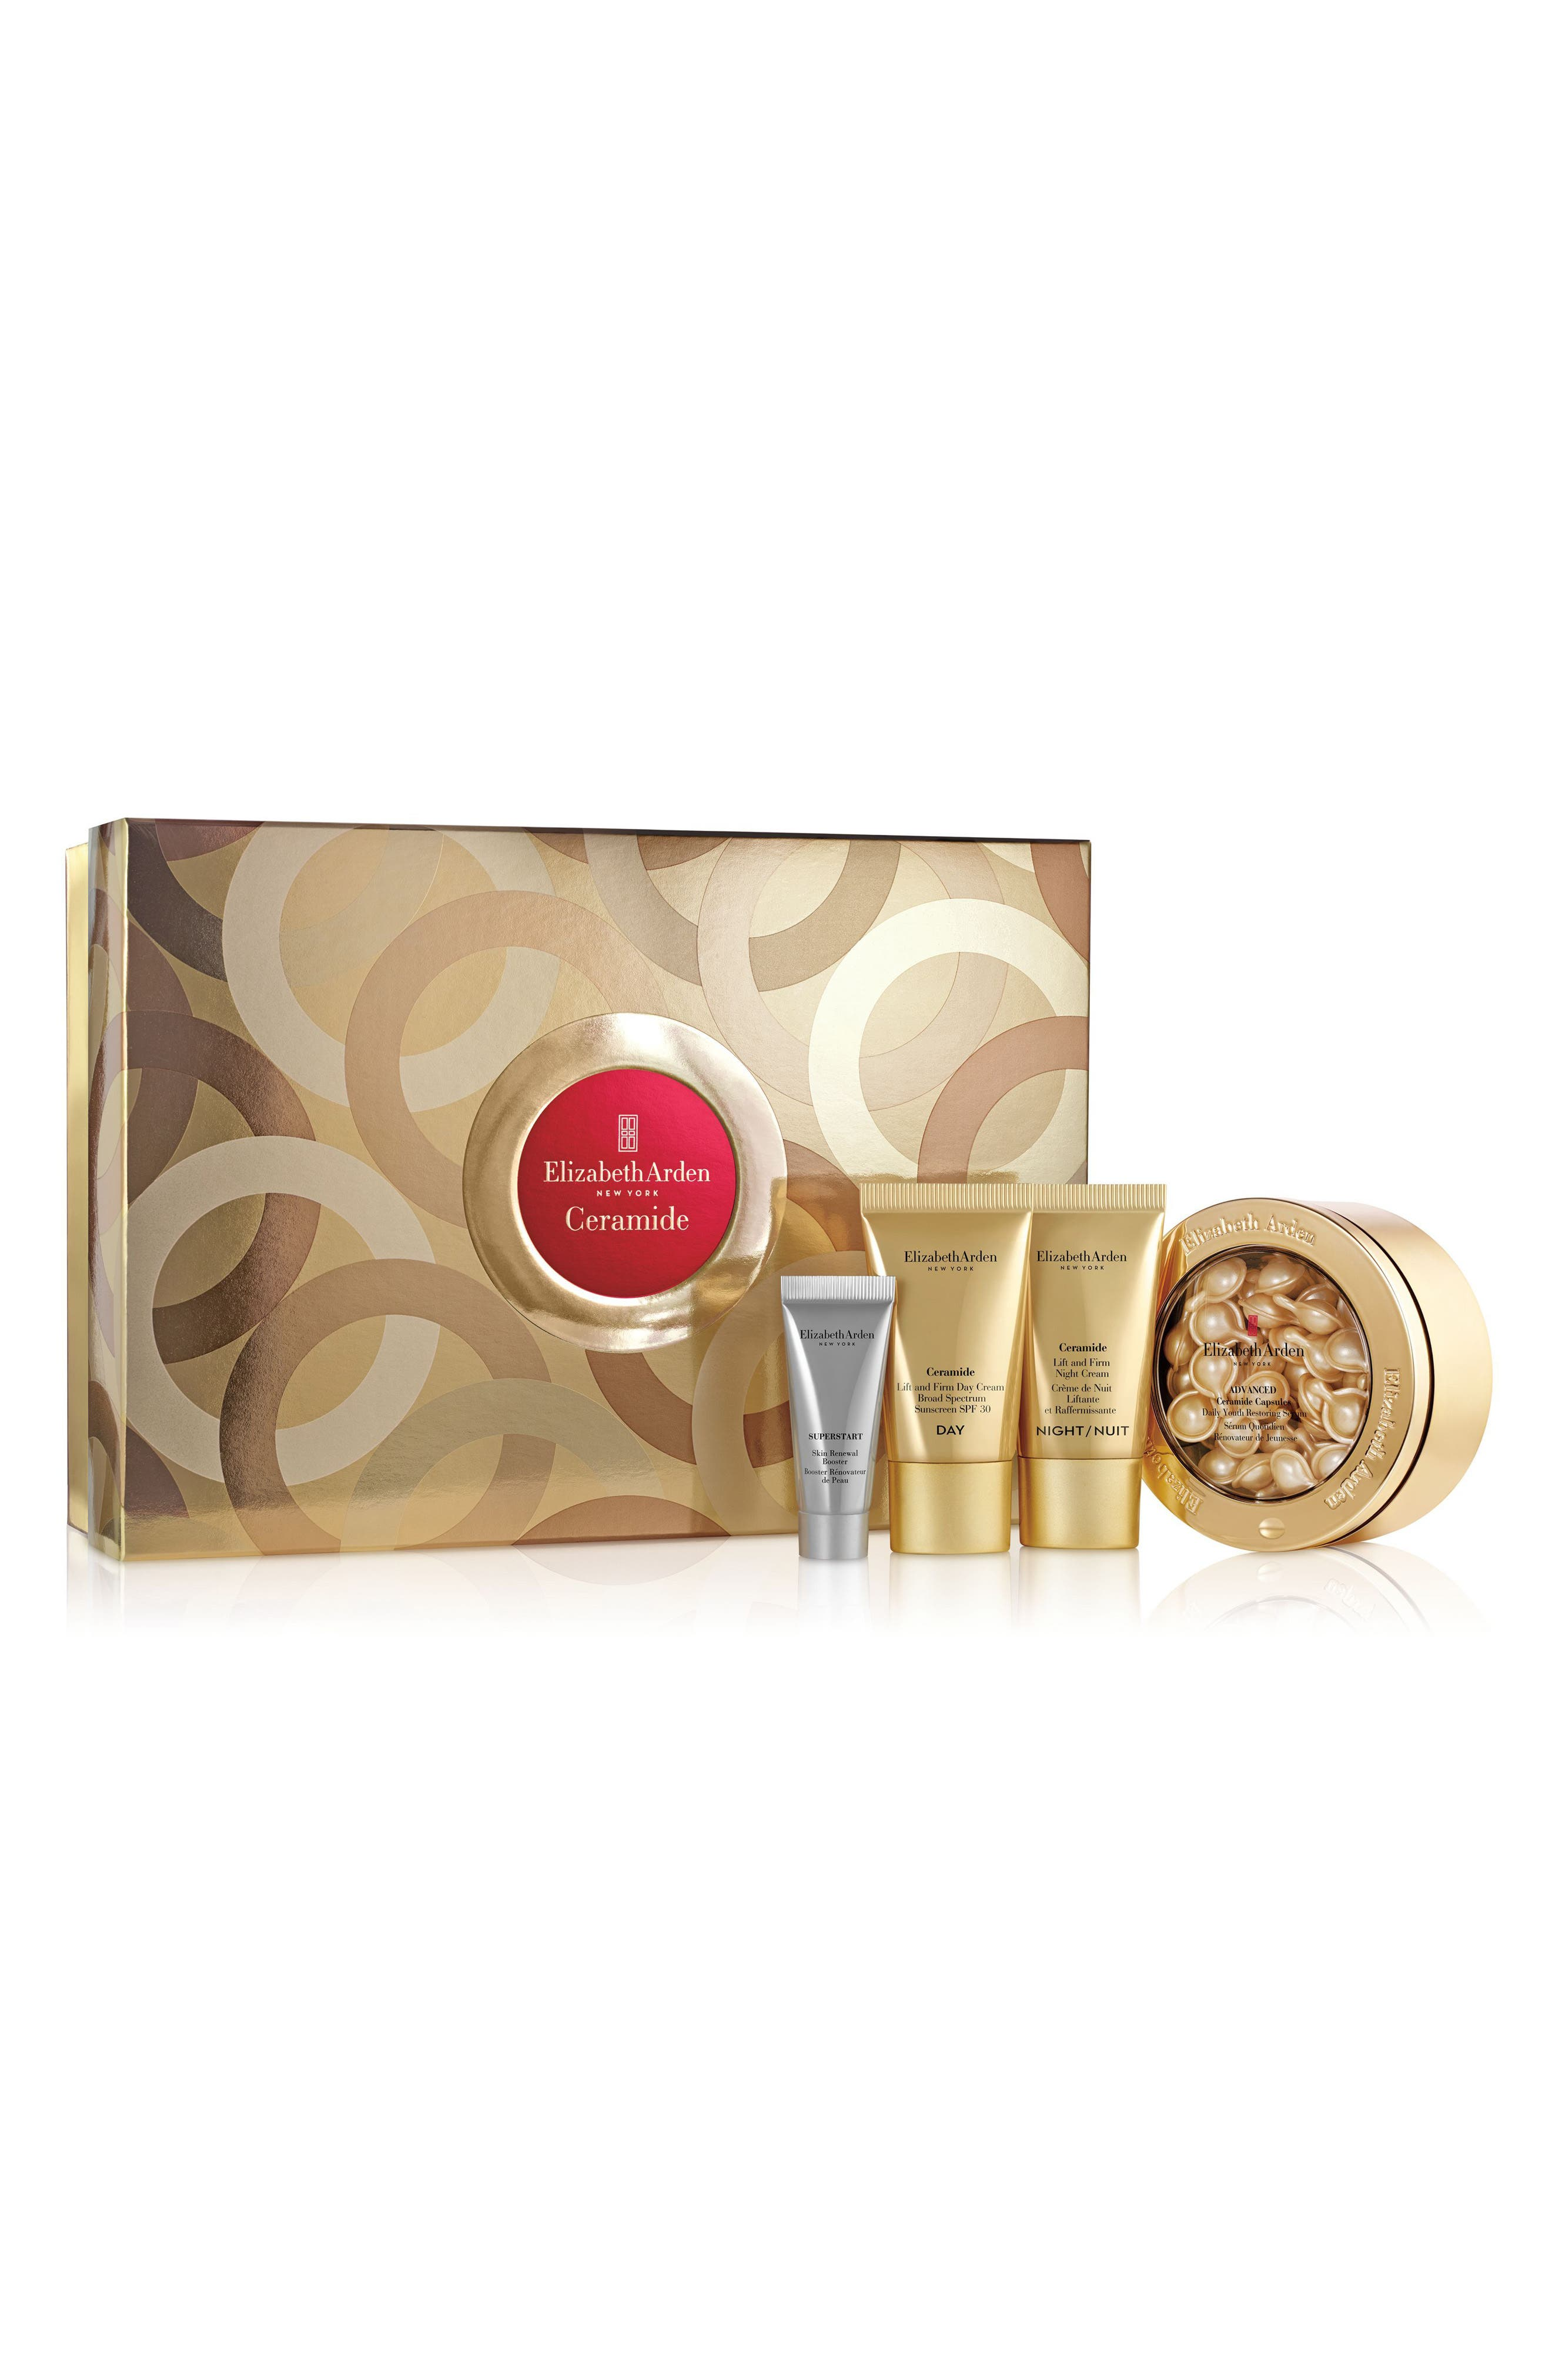 Main Image - Elizabeth Arden Ceramide Lift & Firm Set ($134 Value)